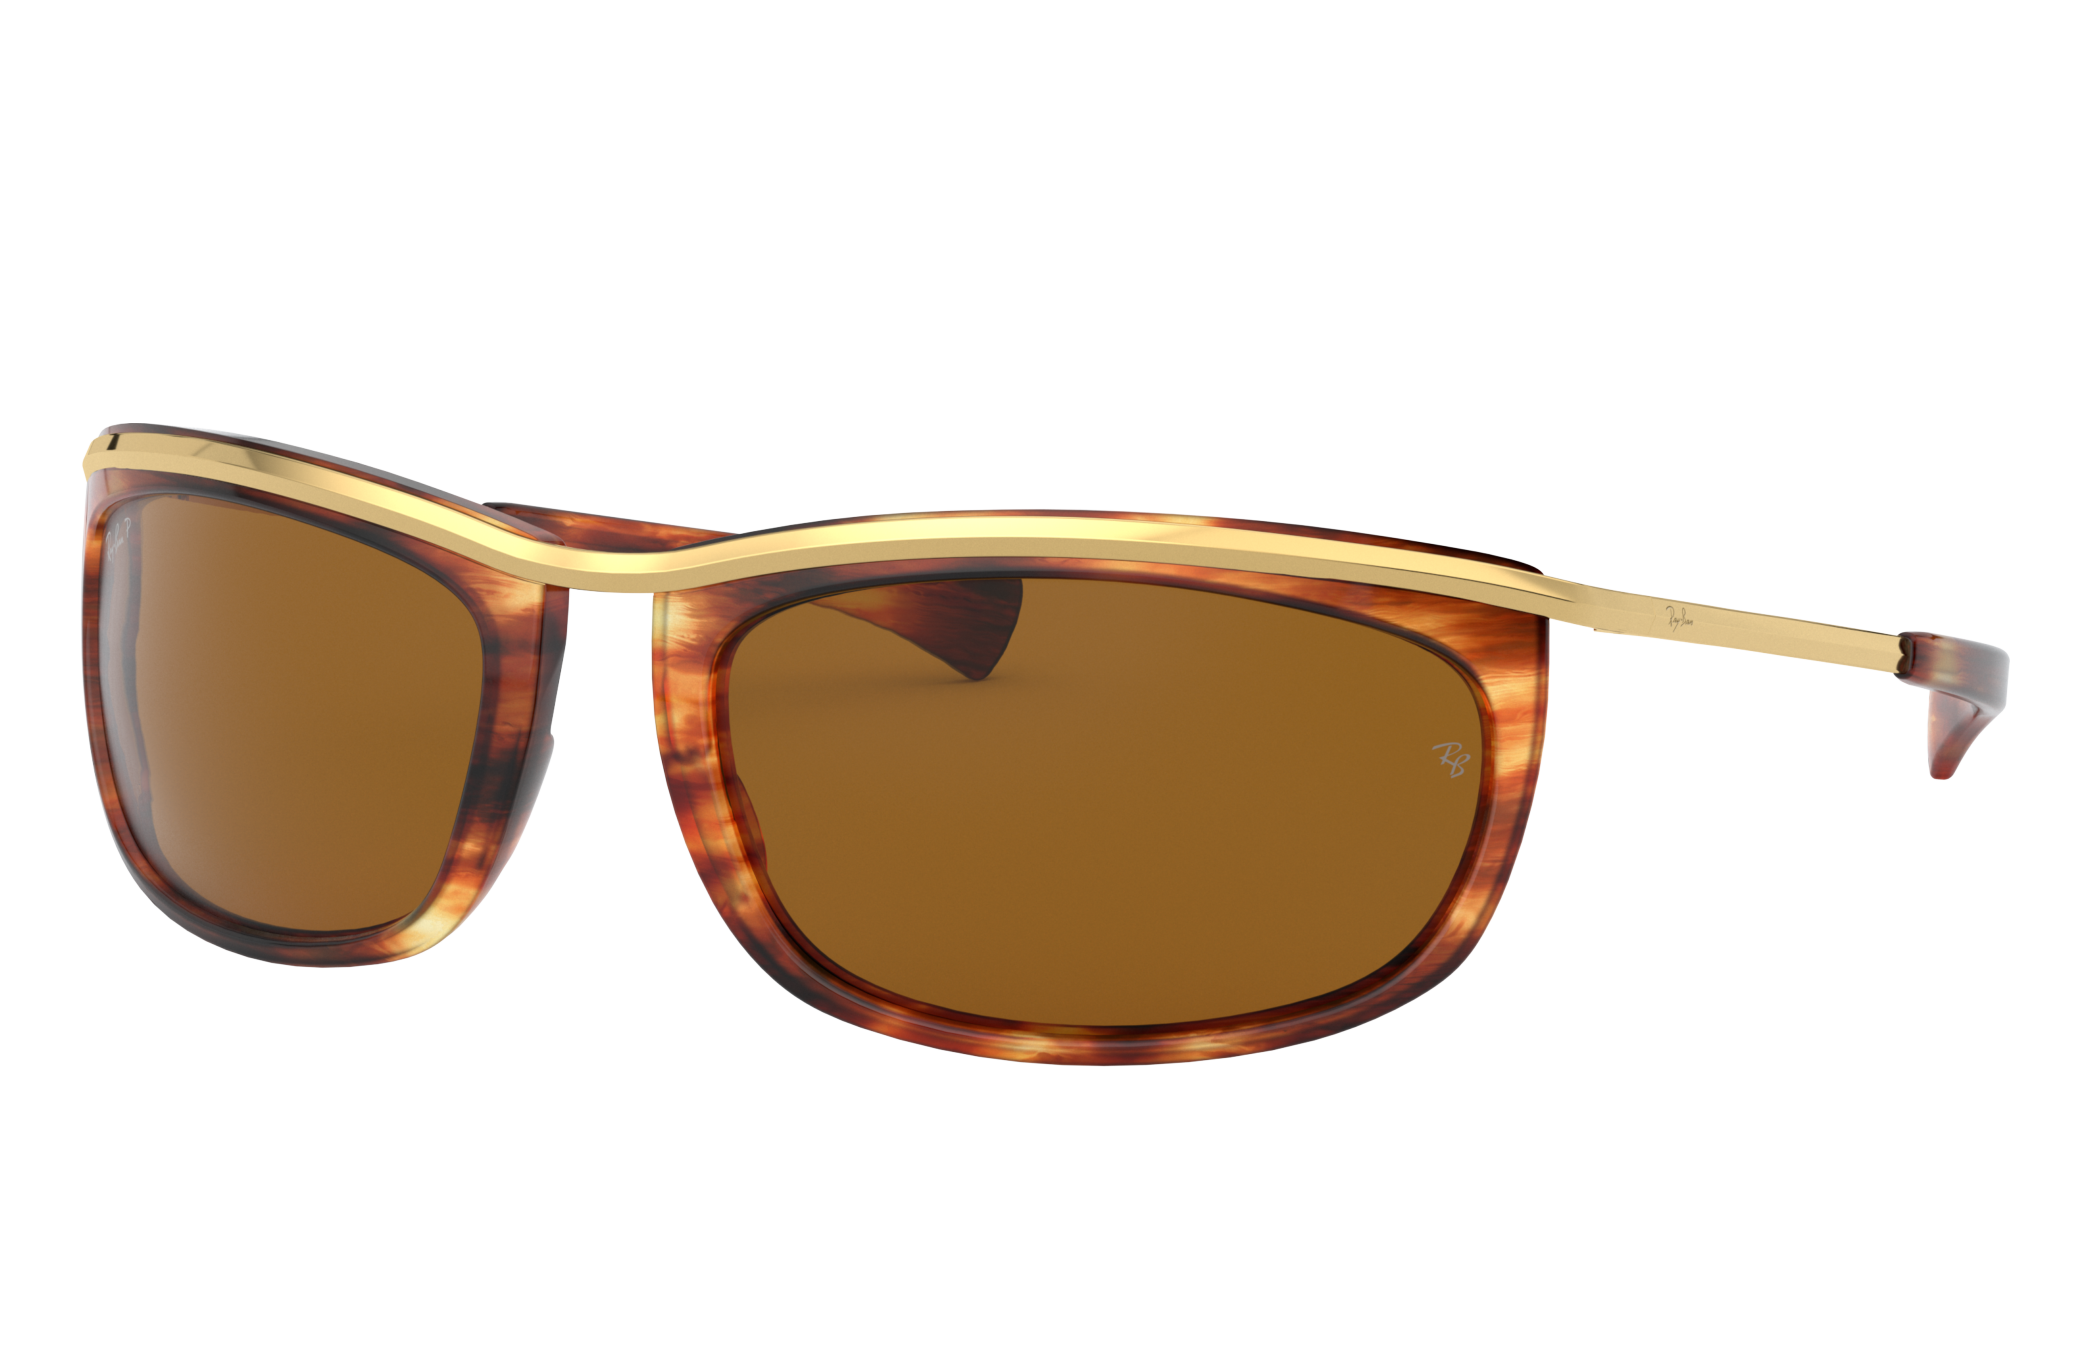 Ray-Ban Olympian I Gold, Polarized Brown Lenses - RB2319